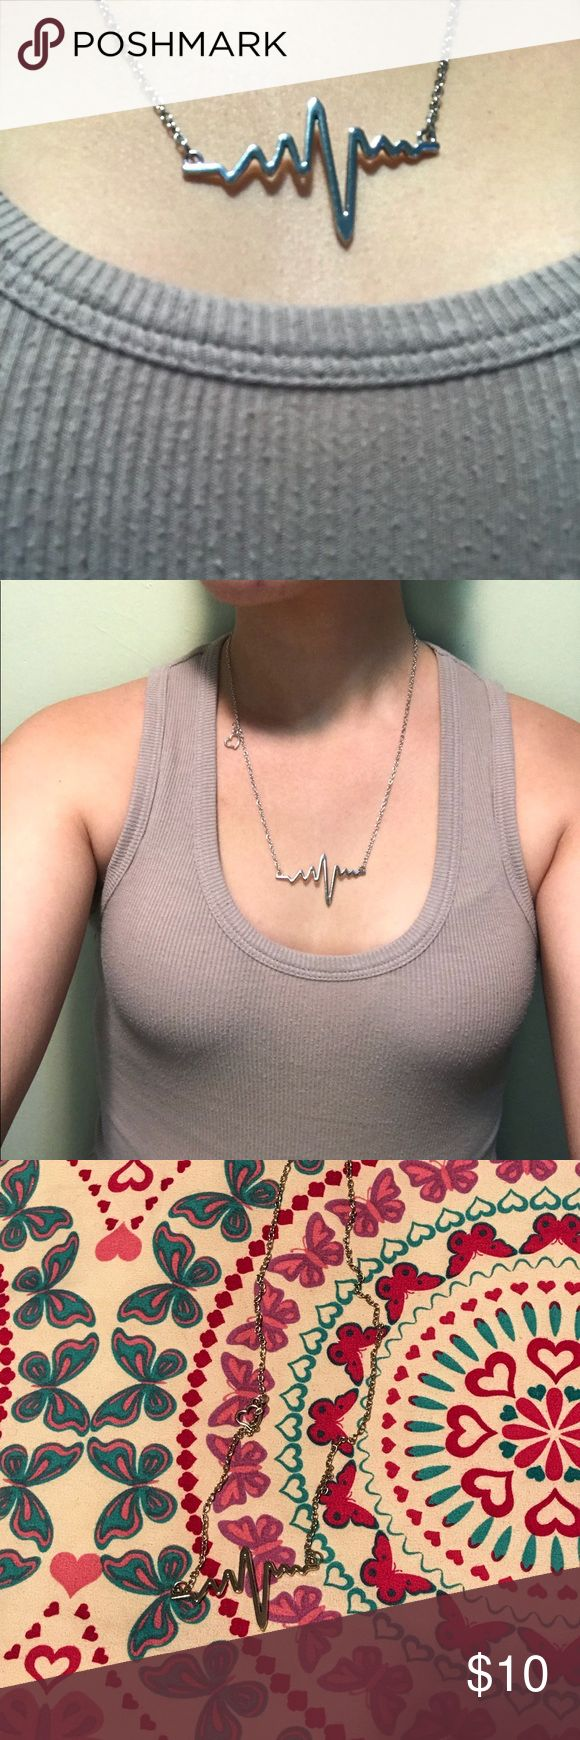 Heartbeat Electrocardiogram Necklace I purchased this necklace when I dedicated myself to the nursing field. I have never worn it as much as I thought I would. It is a brand new dainty stainless steel electrocardiogram necklace. It can be worn for yourself or as a perfect gift for a nurse. Jewelry Necklaces